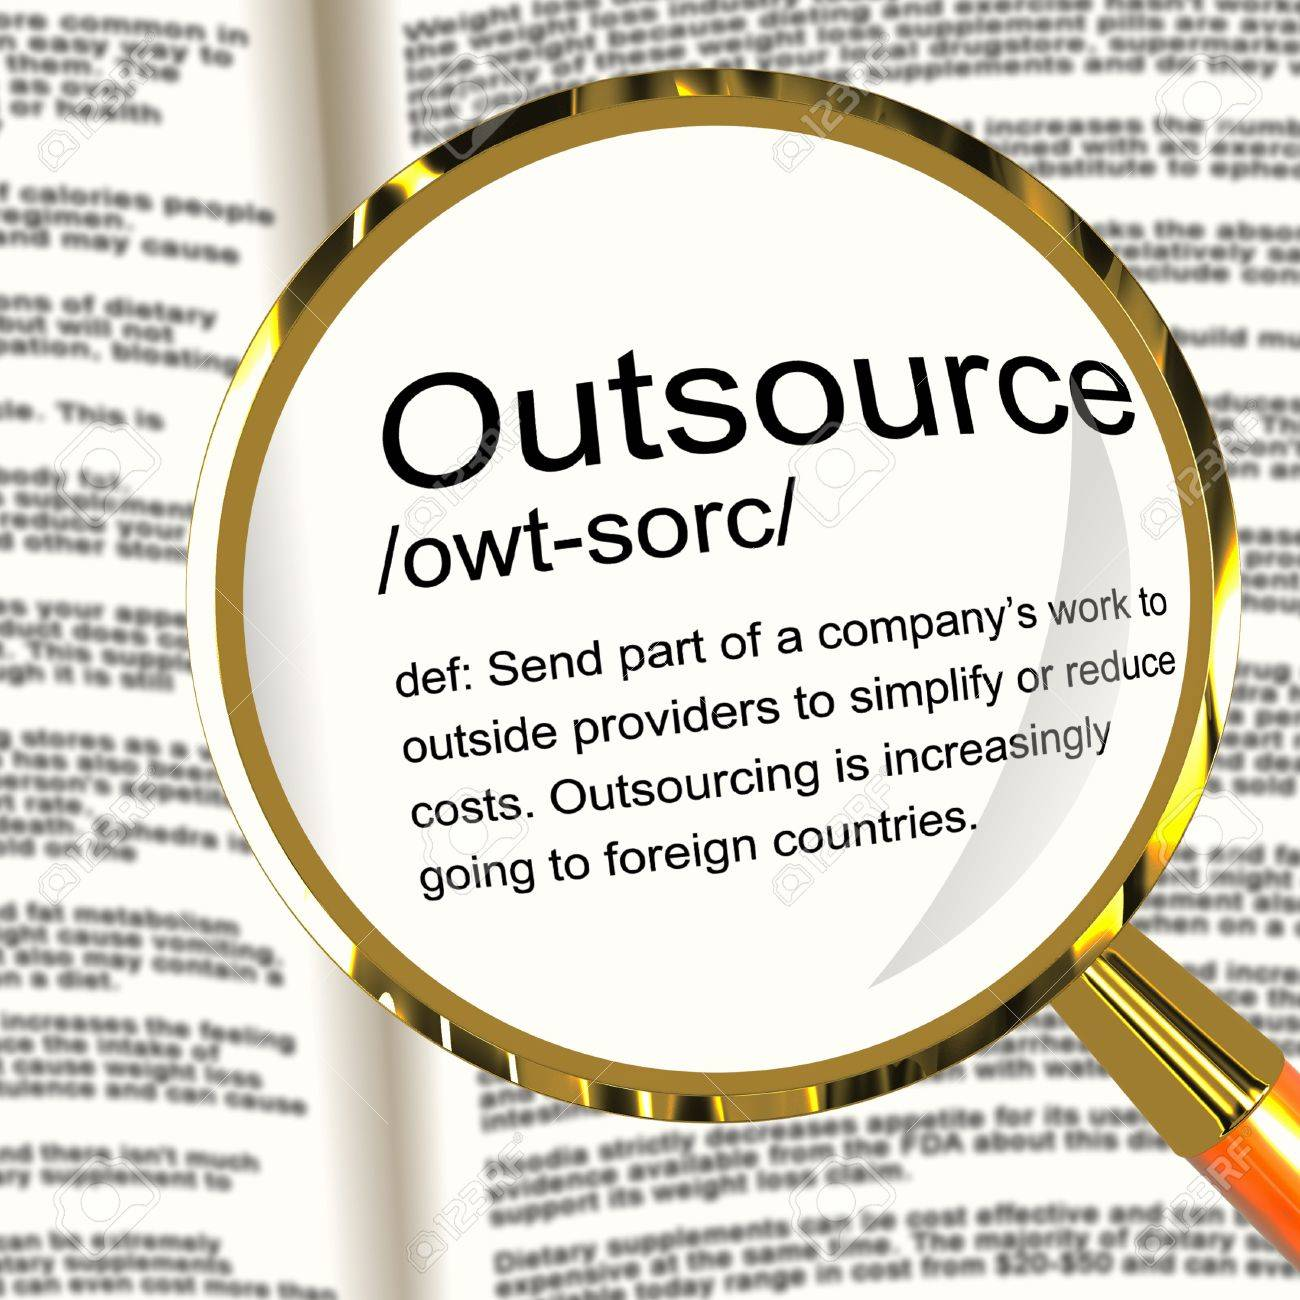 Examples Of Outsourcing